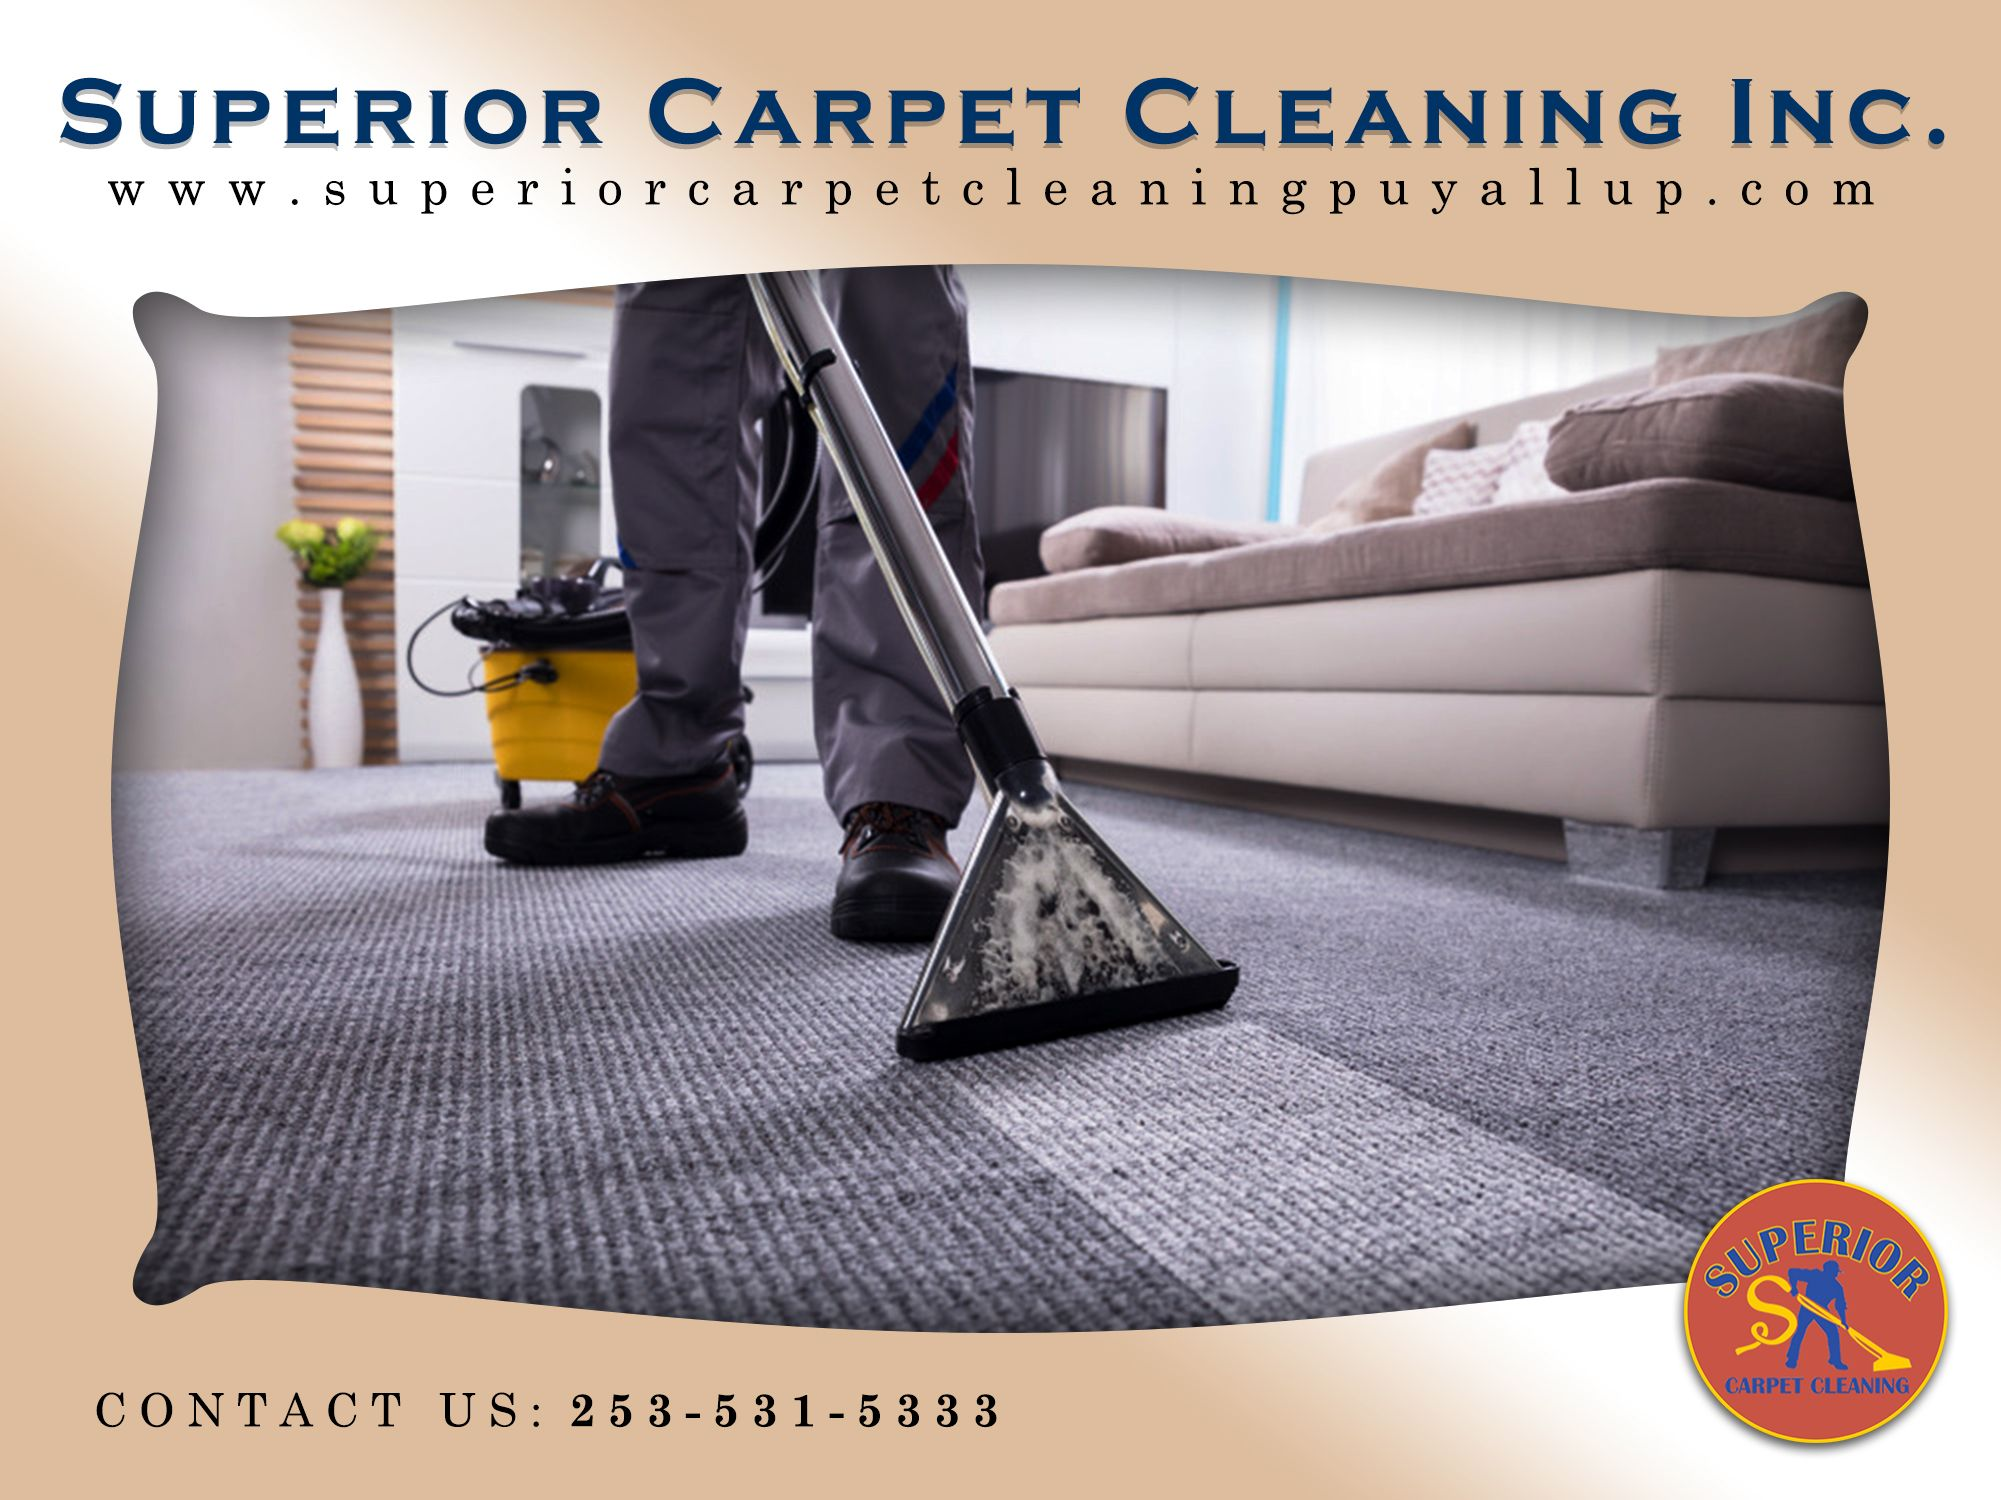 Are You Looking For Top Notch Dependable Carpet Cleaning Our Highly Skilled Staff Is Here To Clean Your Carp How To Clean Carpet Steam Clean Carpet Cleaning